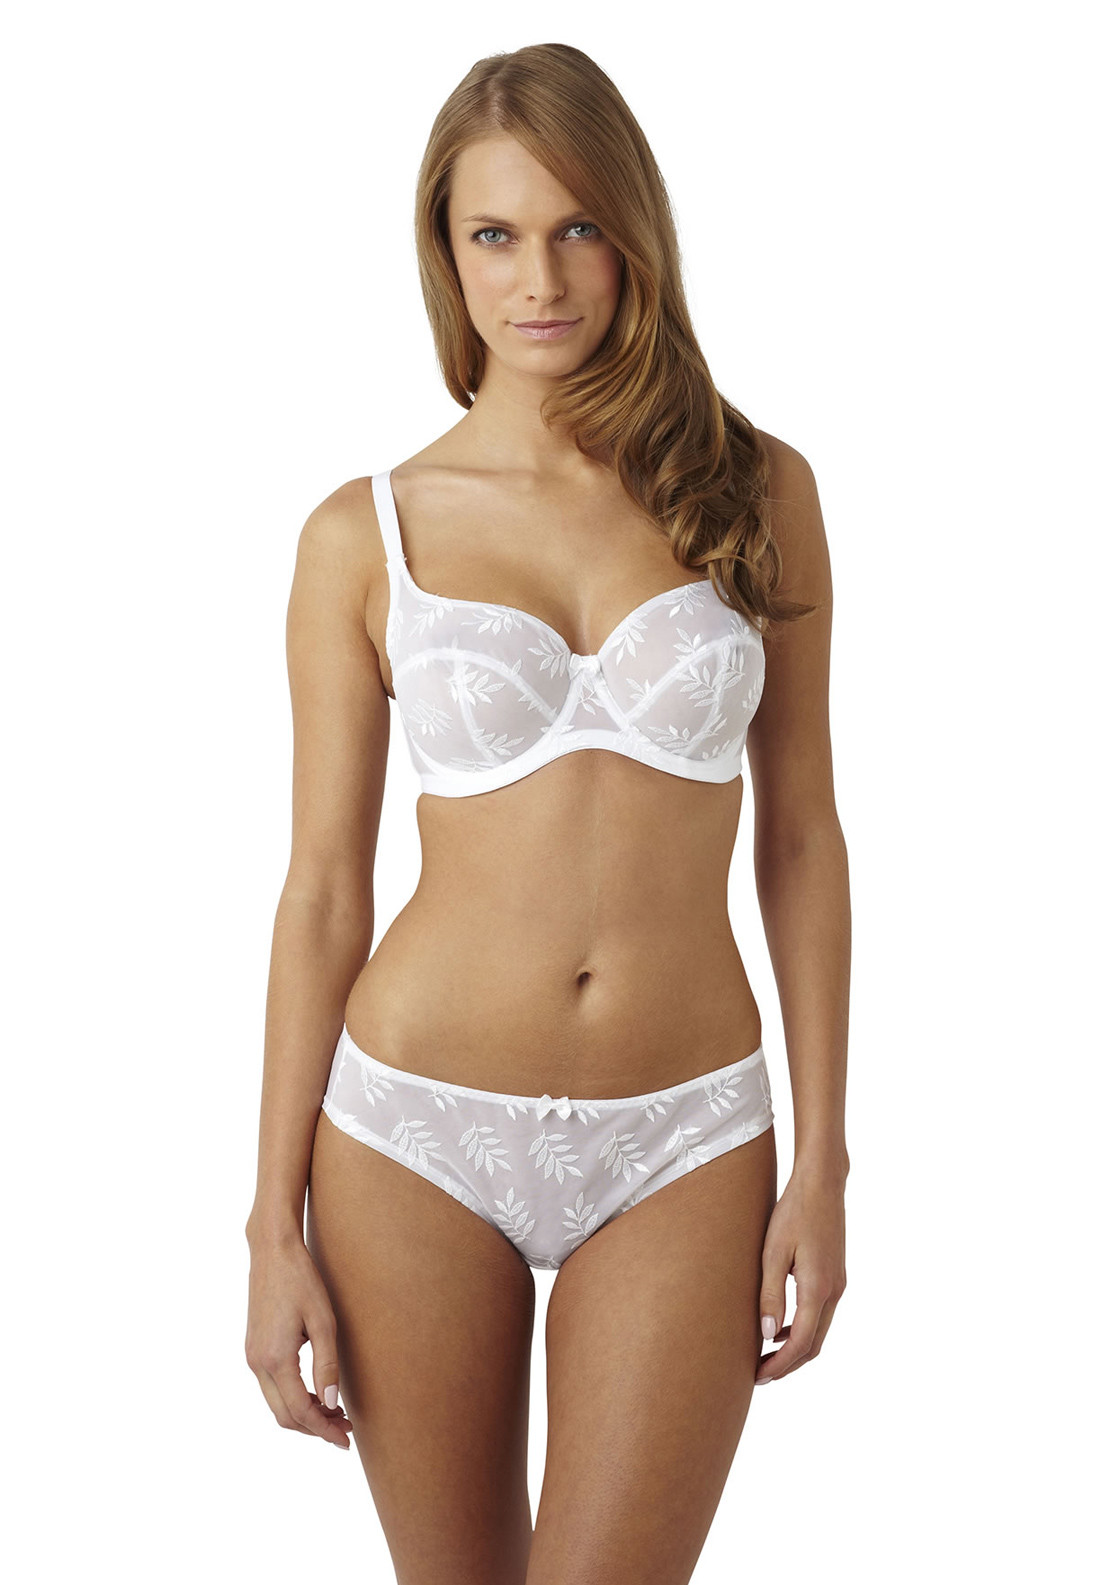 Panache Tango Embroidered Balconette Bra, White